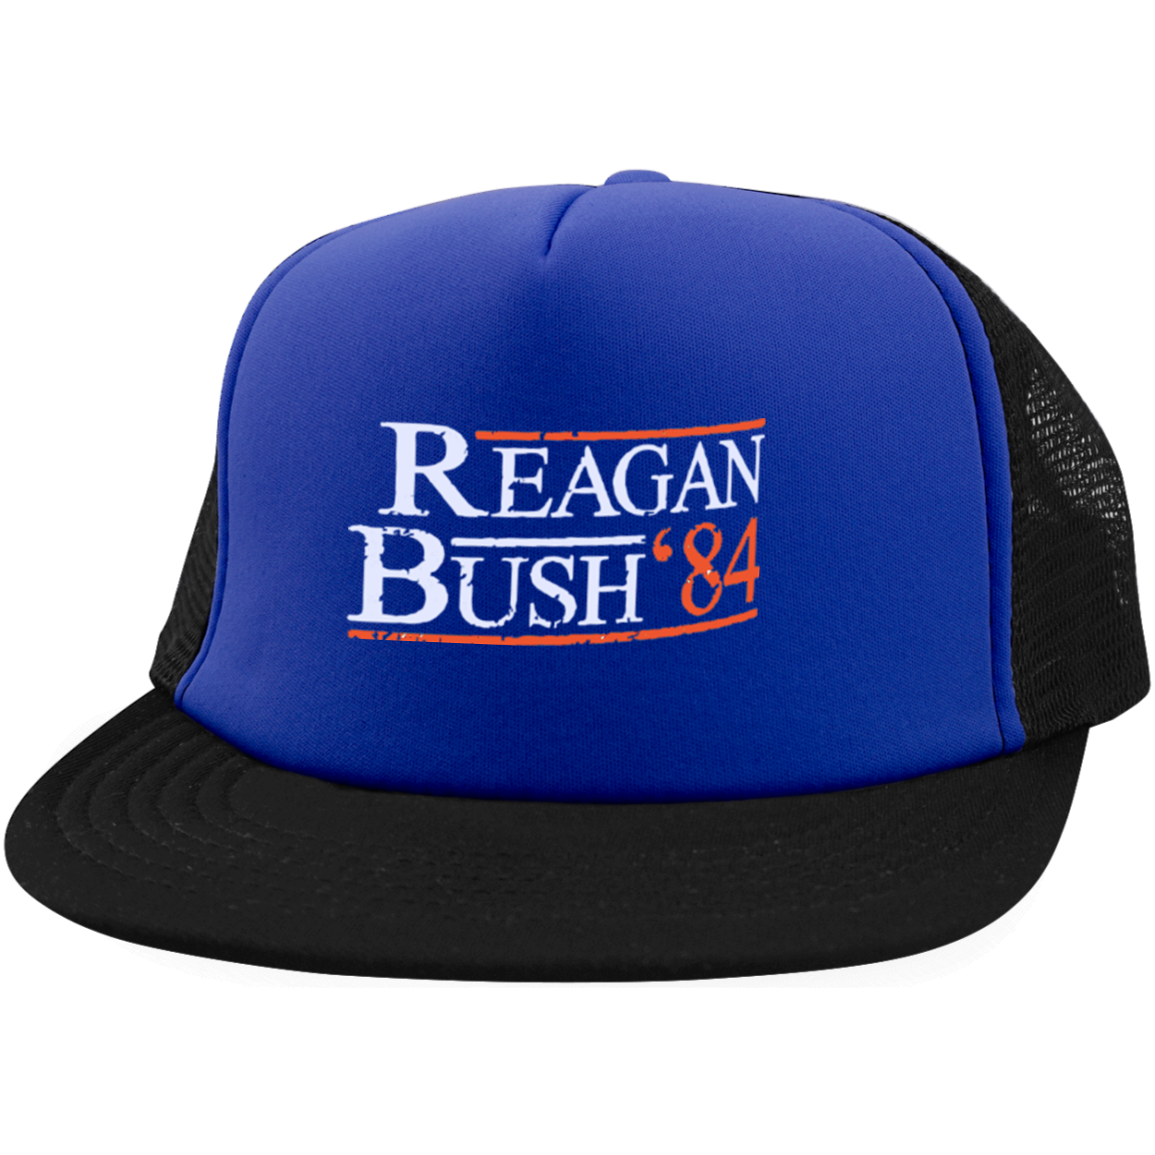 61edc9f958b9e Reagan Bush 84 Embroidered Trucker Hat with Snapback - Generation T